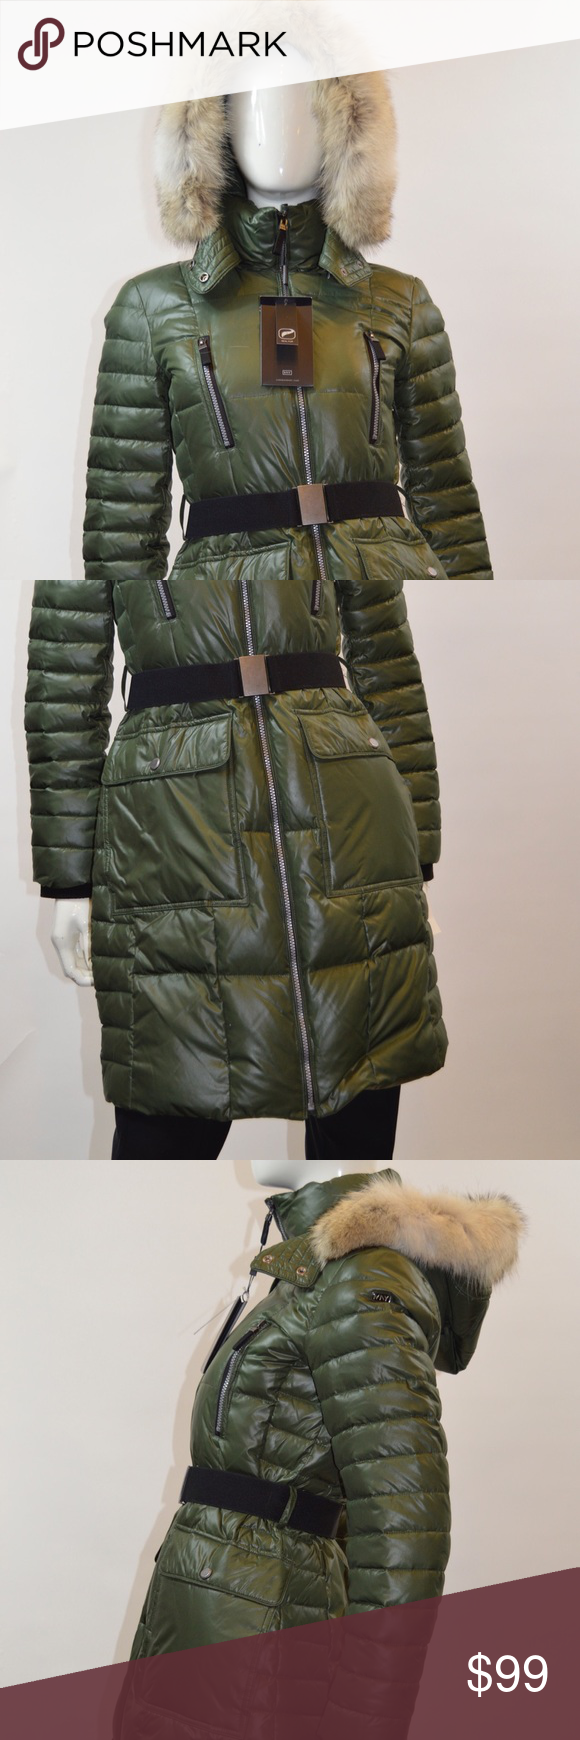 Andrew Marc Down Coat Adrianne MSRP $379 Andrew Marc Down Coat Adrianne MSRP $379 Coyote Fur Hood Andrew Marc Jackets & Coats Puffers